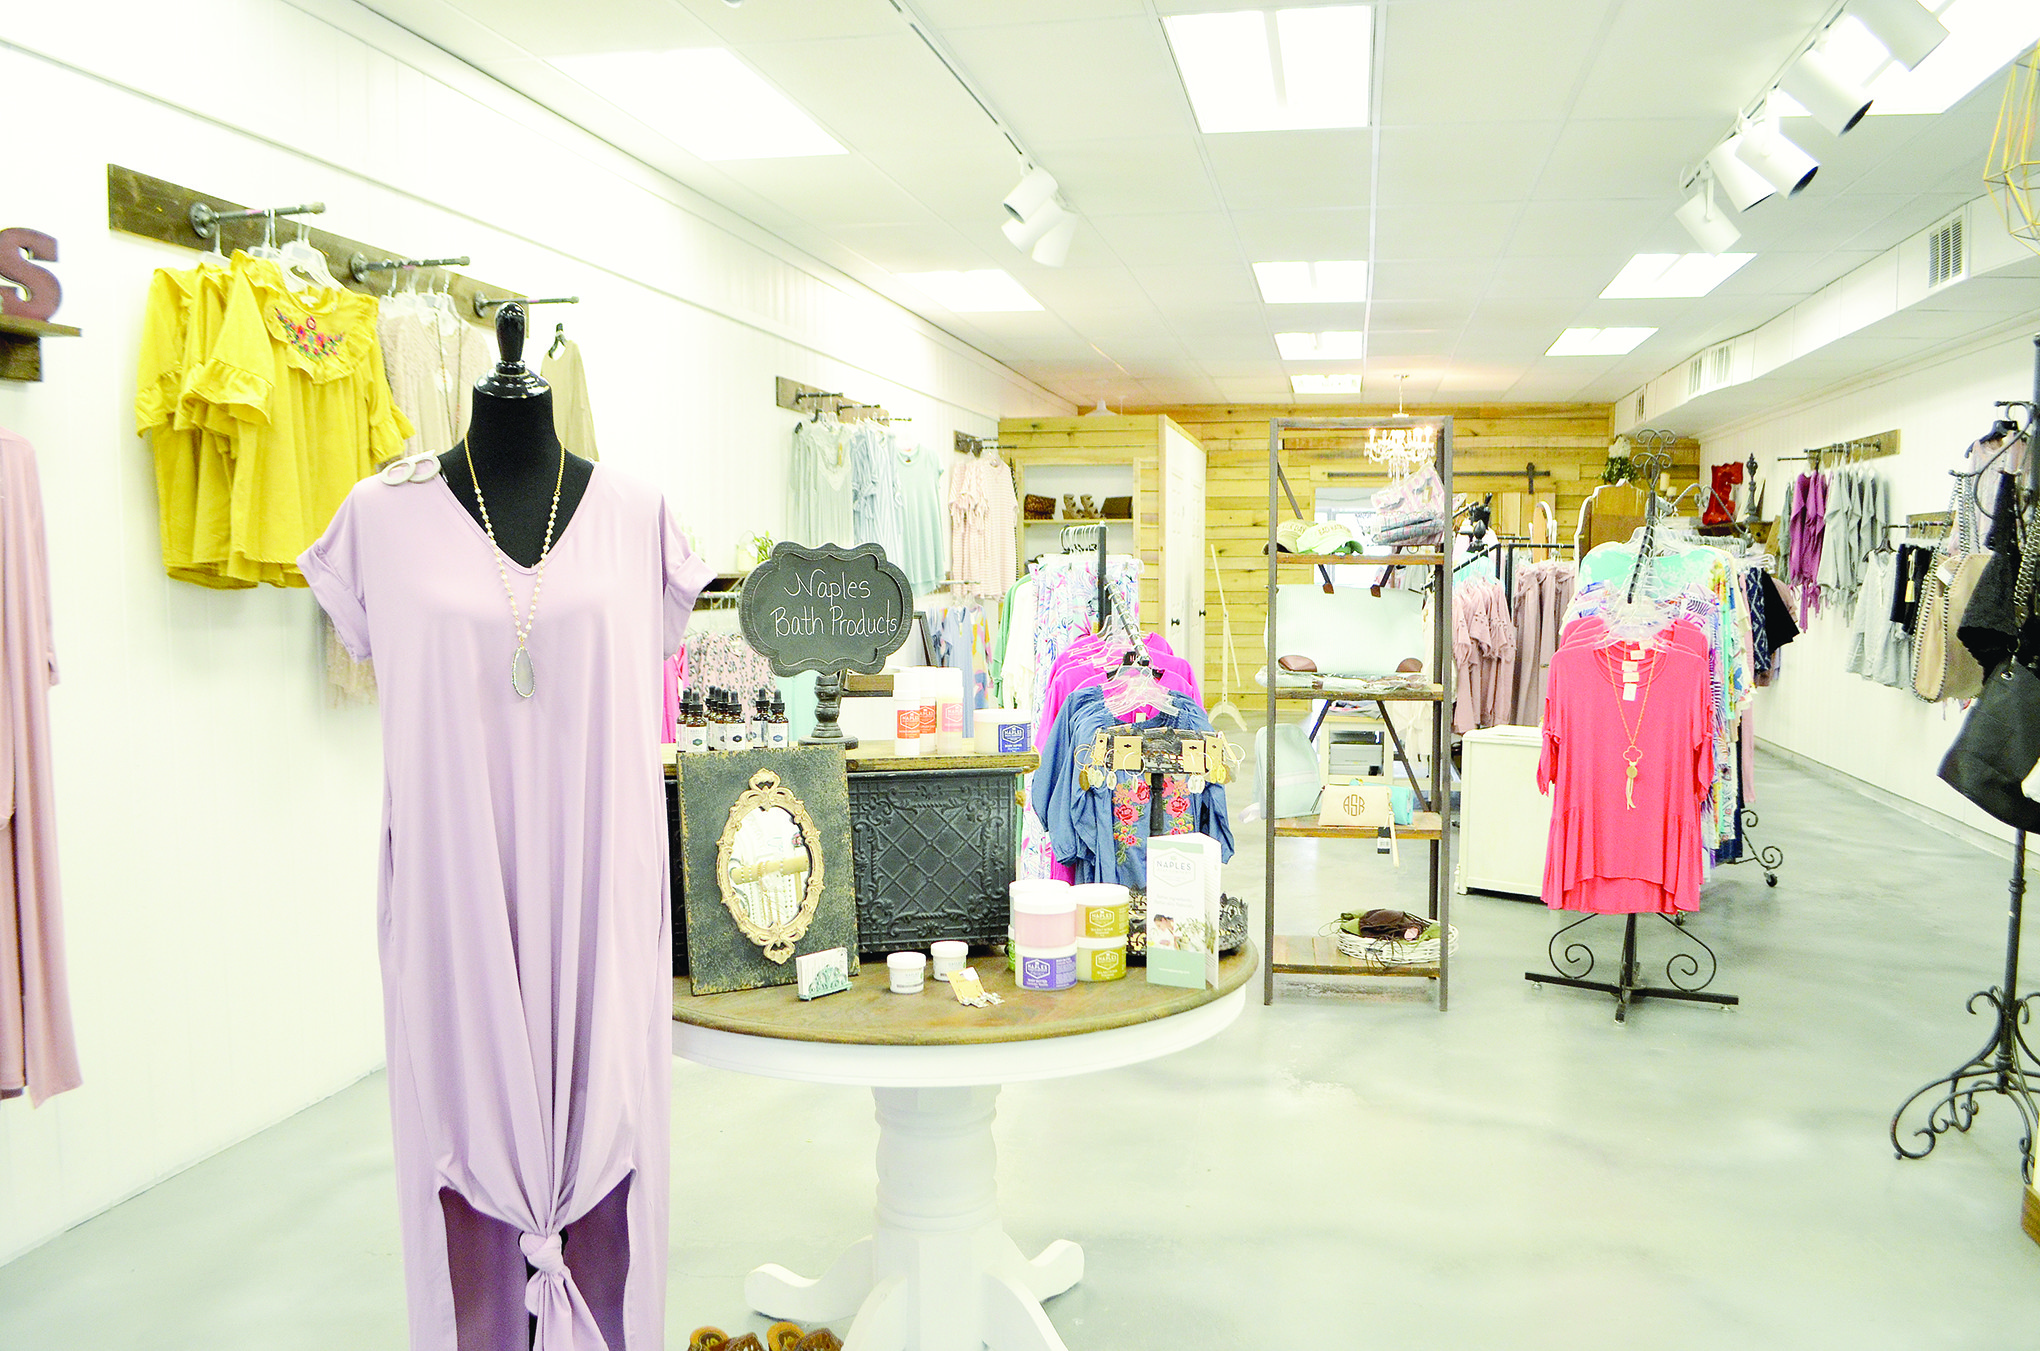 Ella's Boutique recently relocated to downtown Jasper and is one of many businesses popping up in the district.